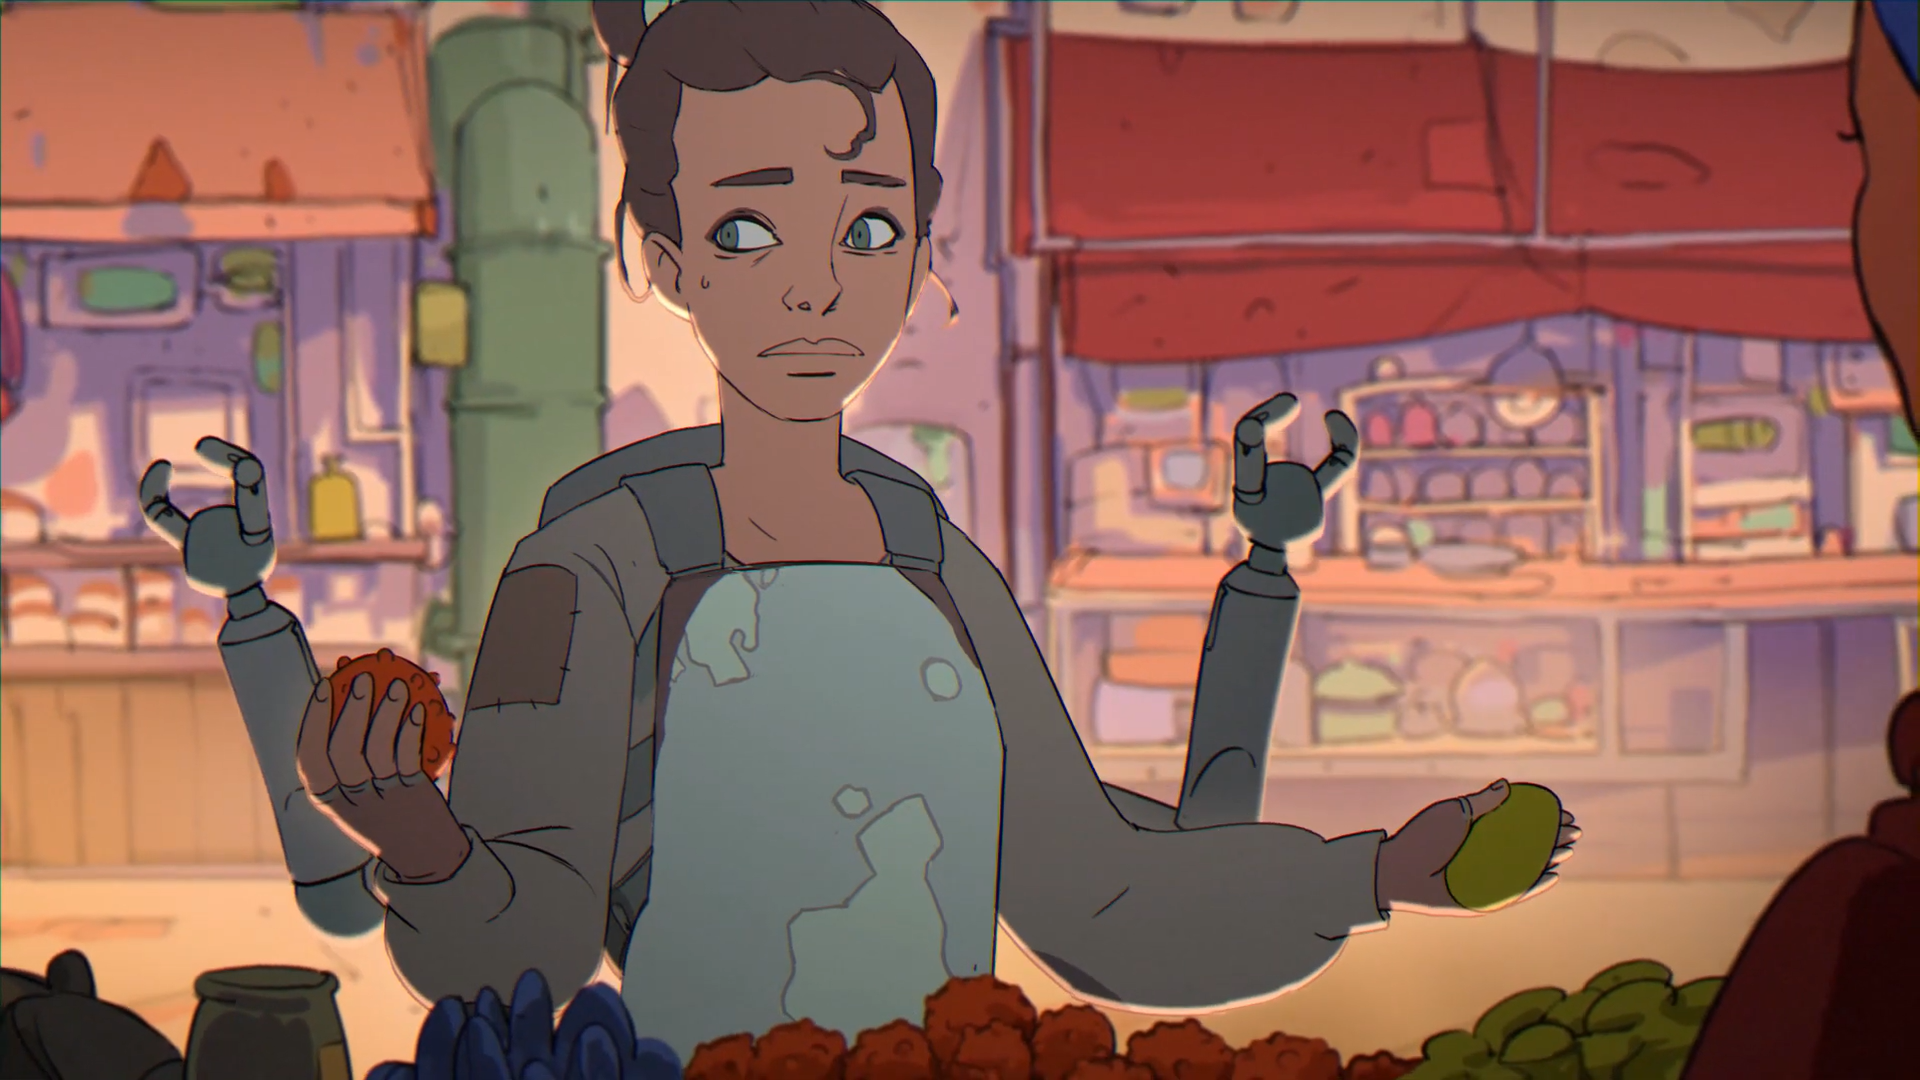 a person with two extra robot arms looking concerned and holding fruits